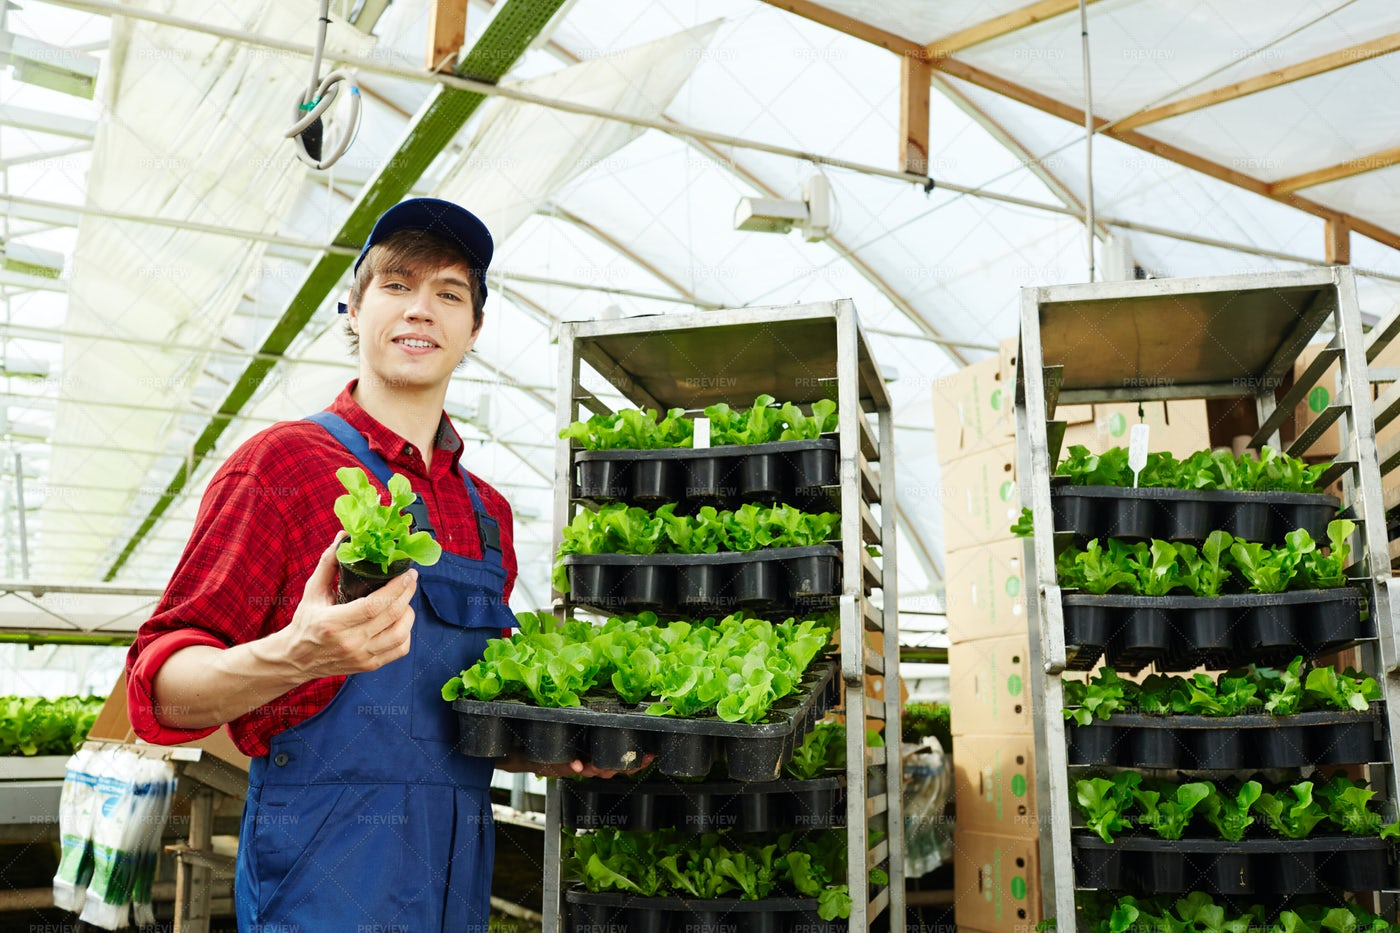 Greenhouse Worker With Fresh Lettuce: Stock Photos